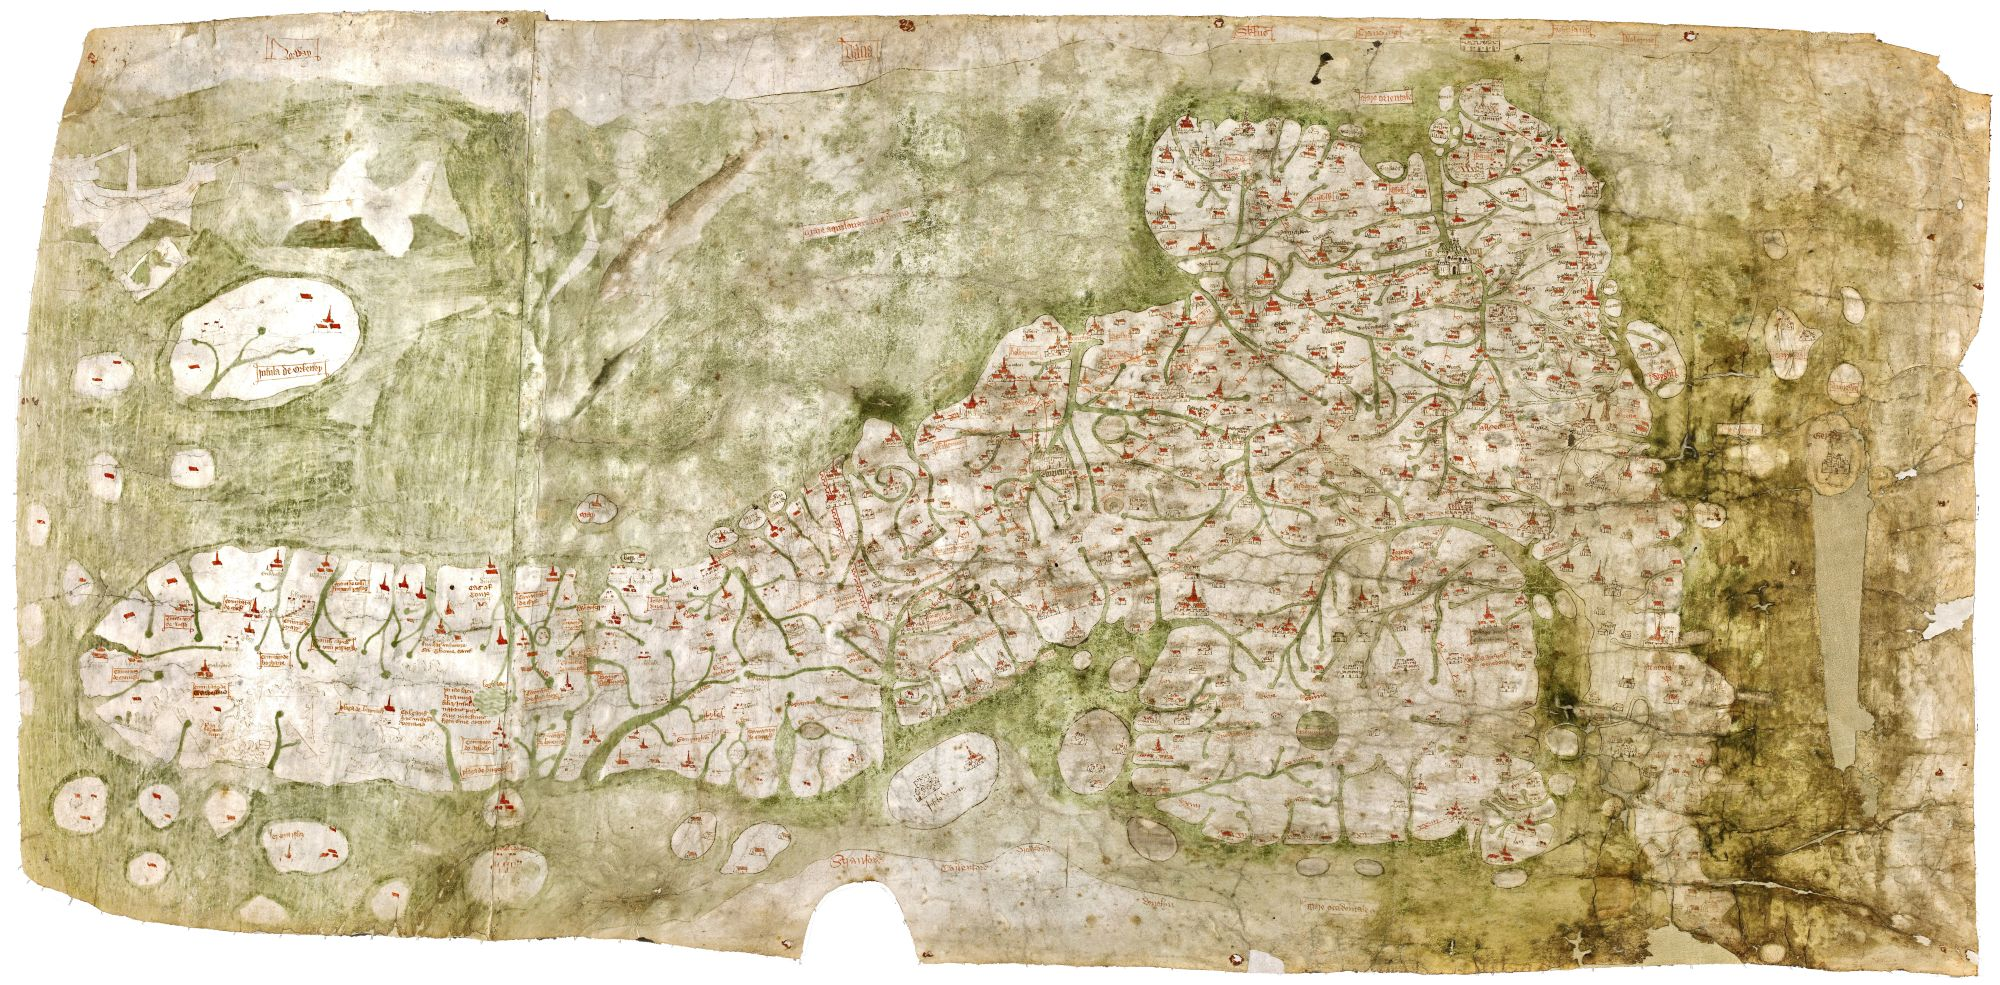 Medieval maps of regions | British Library - Picturing Places - The ...